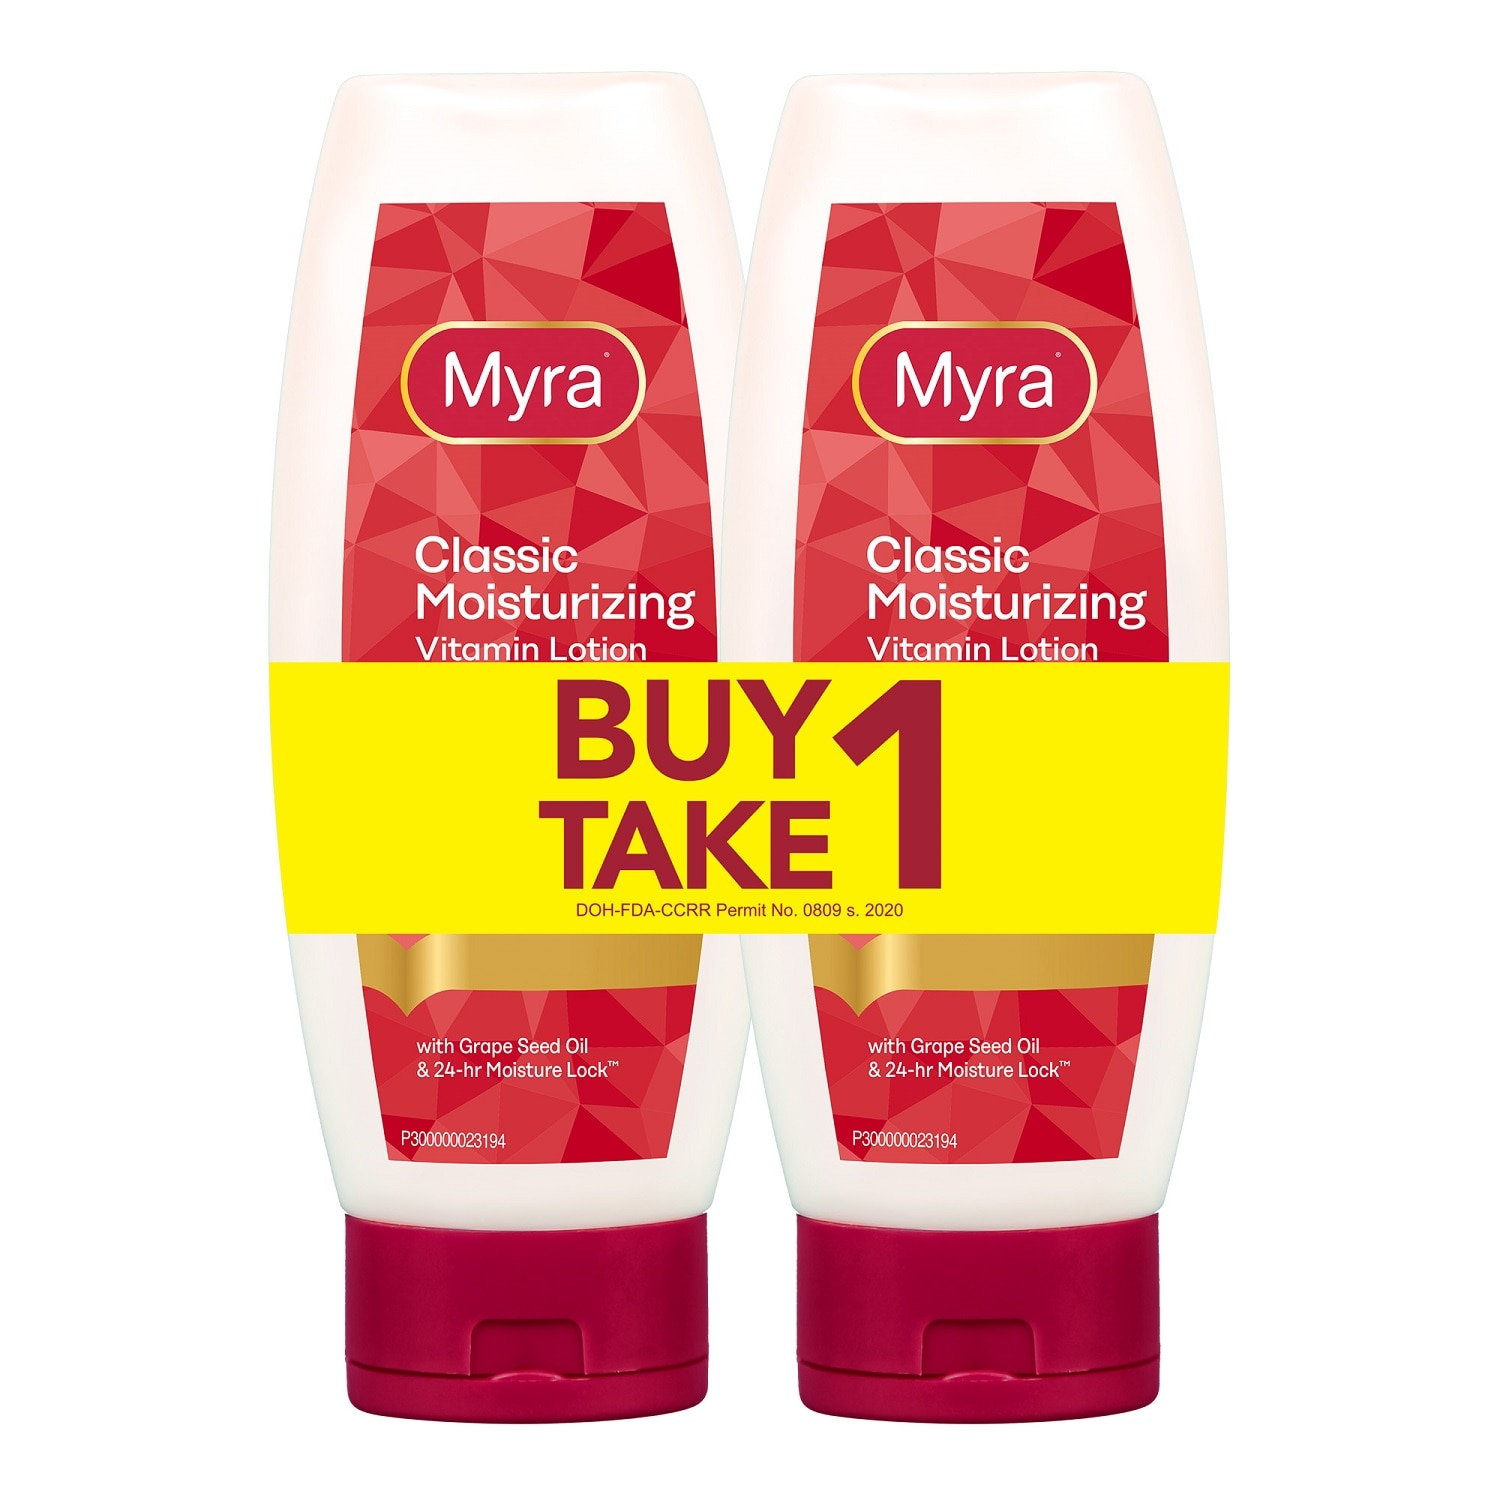 MYRA EClassic Moisturizing Vitamin Lotion 200ml Buy 1 Take 1,For Women2% off – min spend P600 (code: PLUS2), 4% off – min spend P800 (code: PLUS4), 8% off – min spend P1,000 (code: PLUS8) - Members Only. Promo exclusions: Health items, Milk, B1T1 and Buy xx for xx promos